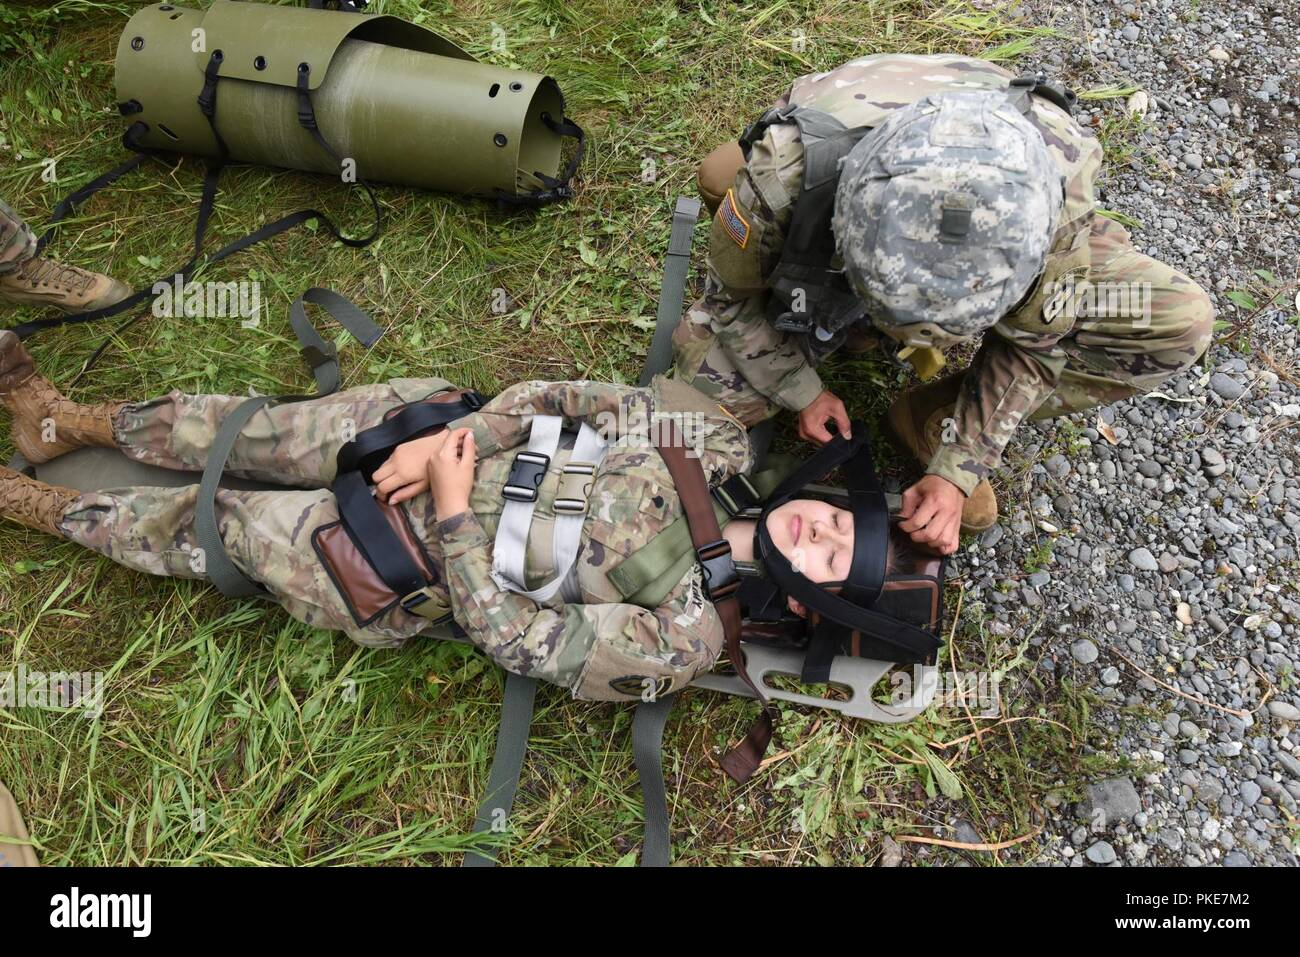 """U.S. Army Spc. Inook Cho from Charlie Company, 725th Brigade Support Battalion (Airborne), 4th Infantry Brigade Combat Team (Airborne), 25th Infantry Division, secures a simulated patient with a suspected spinal injury July 26, 2018 at Joint Base Elmendorf-Richardson, Alaska. The """"Cobra Medics"""" conducted a four day challenge to select two medics to be sent as competitors to the USARAK best medic competition. Stock Photo"""